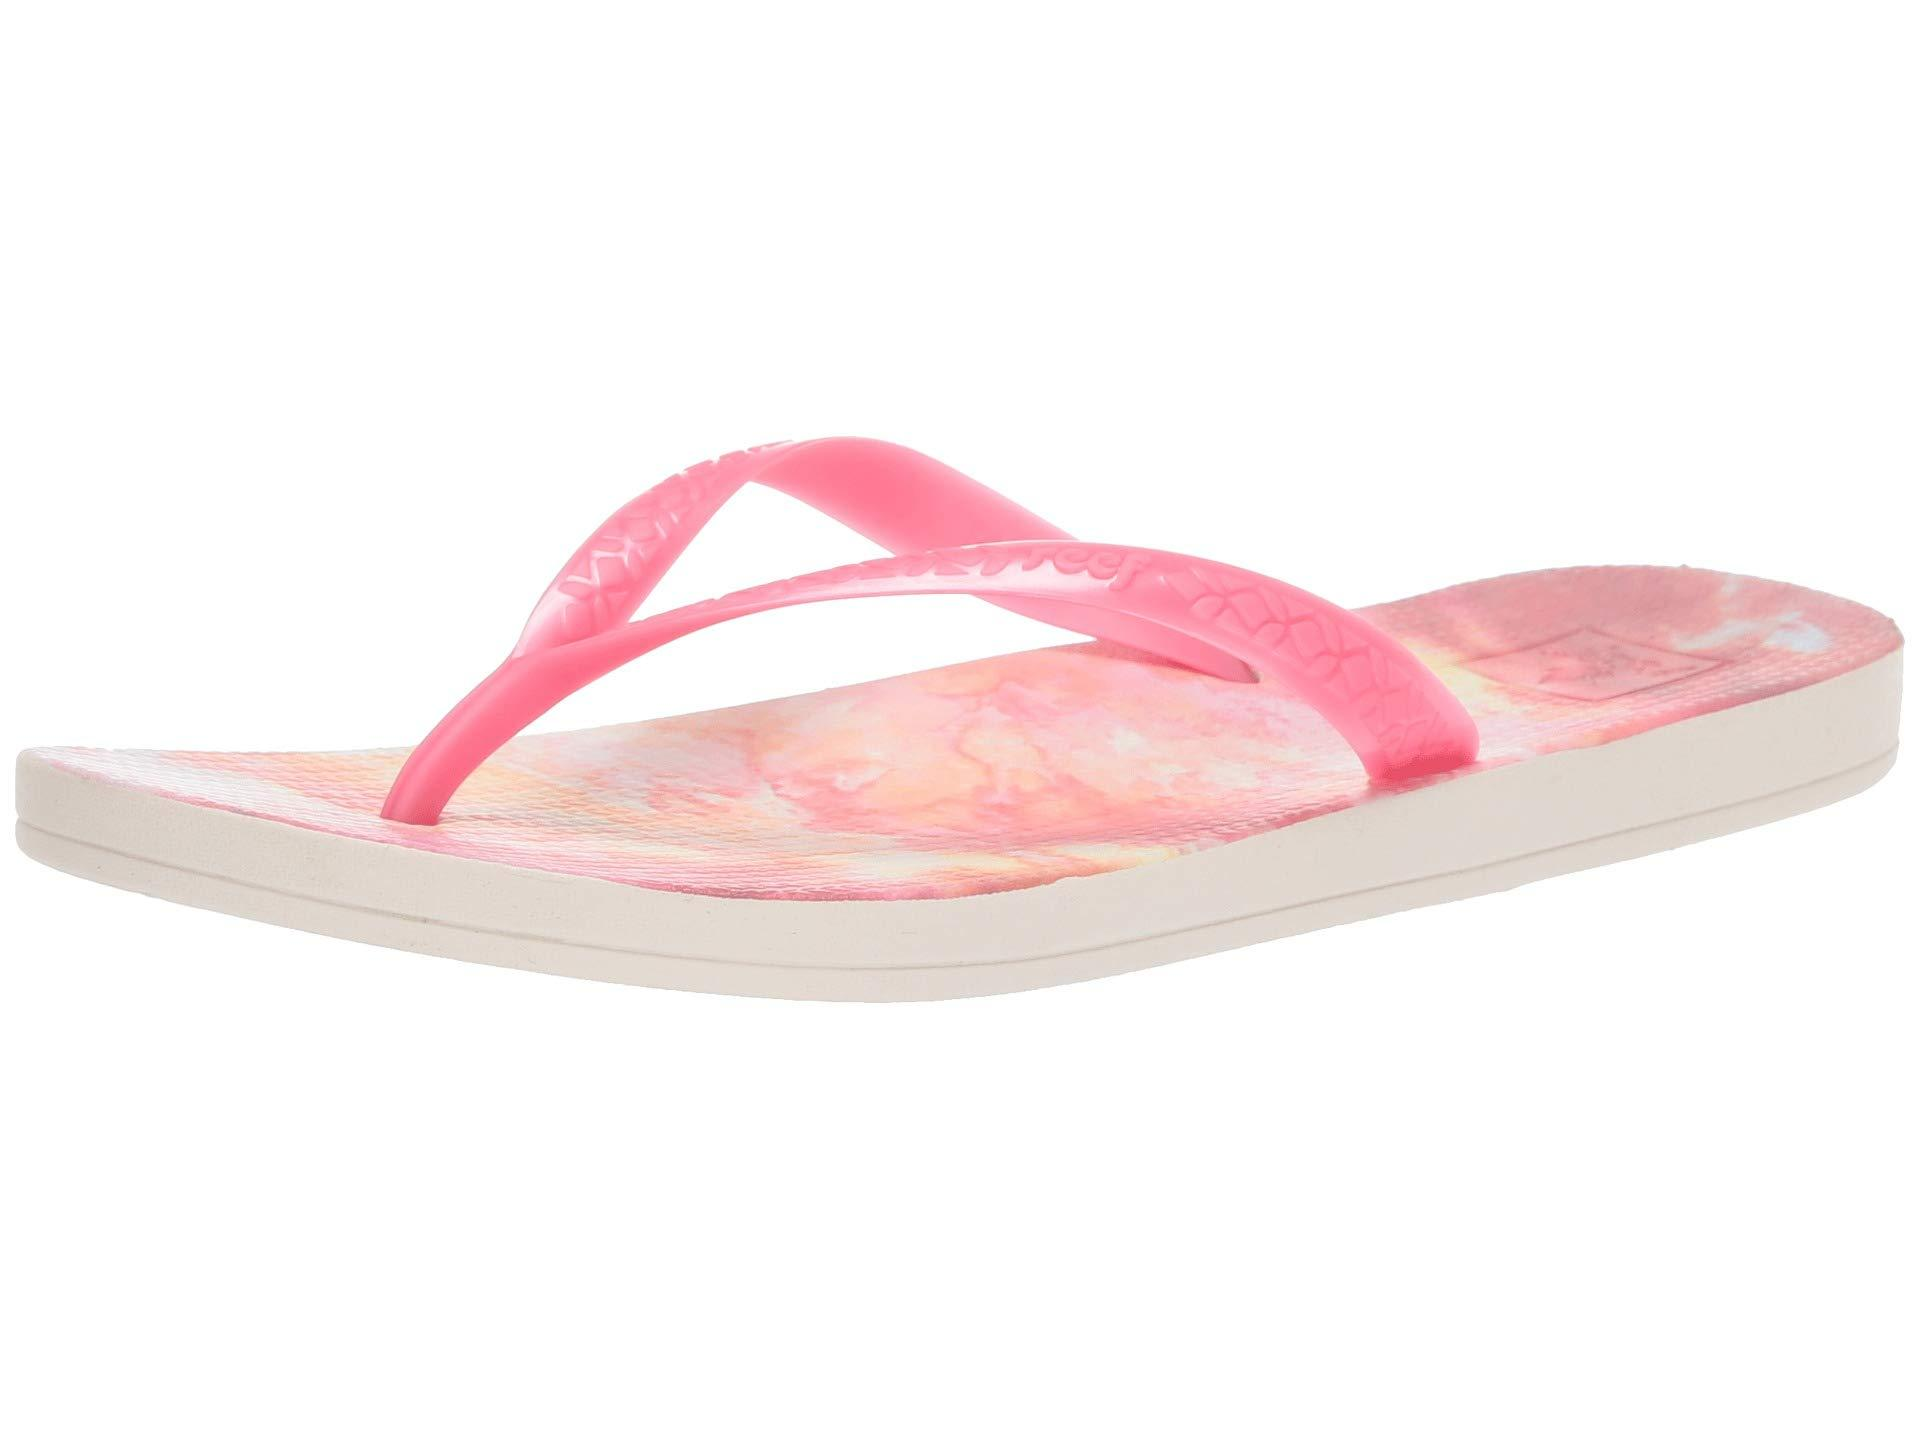 fc8d497999f3 Reef - Pink Escape Lux Print (leopard) Women s Sandals - Lyst. View  fullscreen